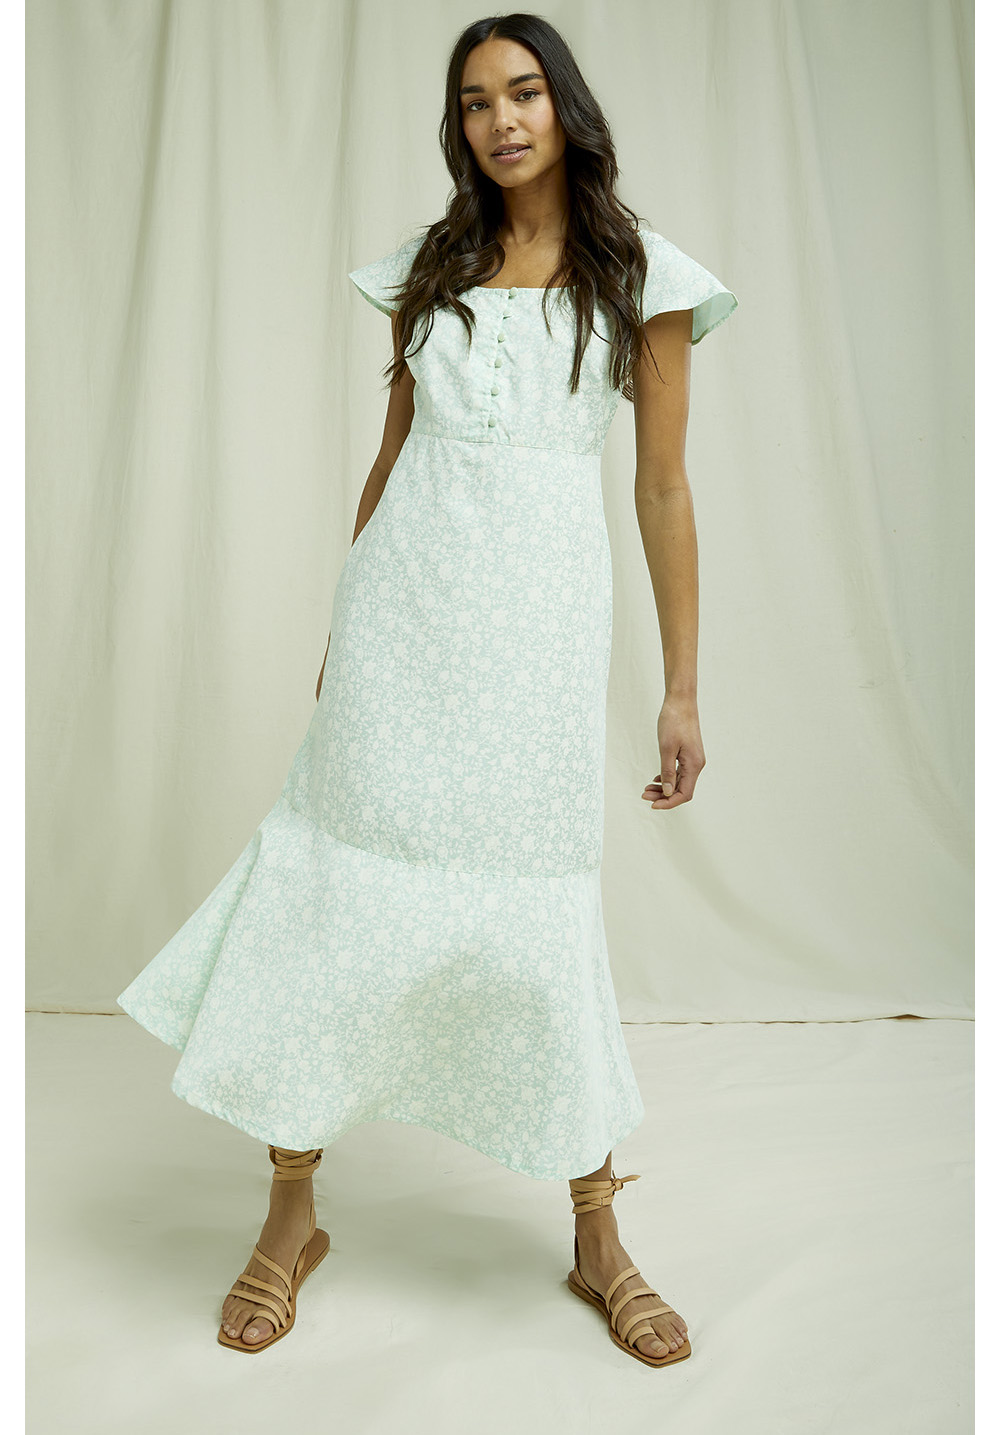 Pippa Silhouette Floral Dress 12